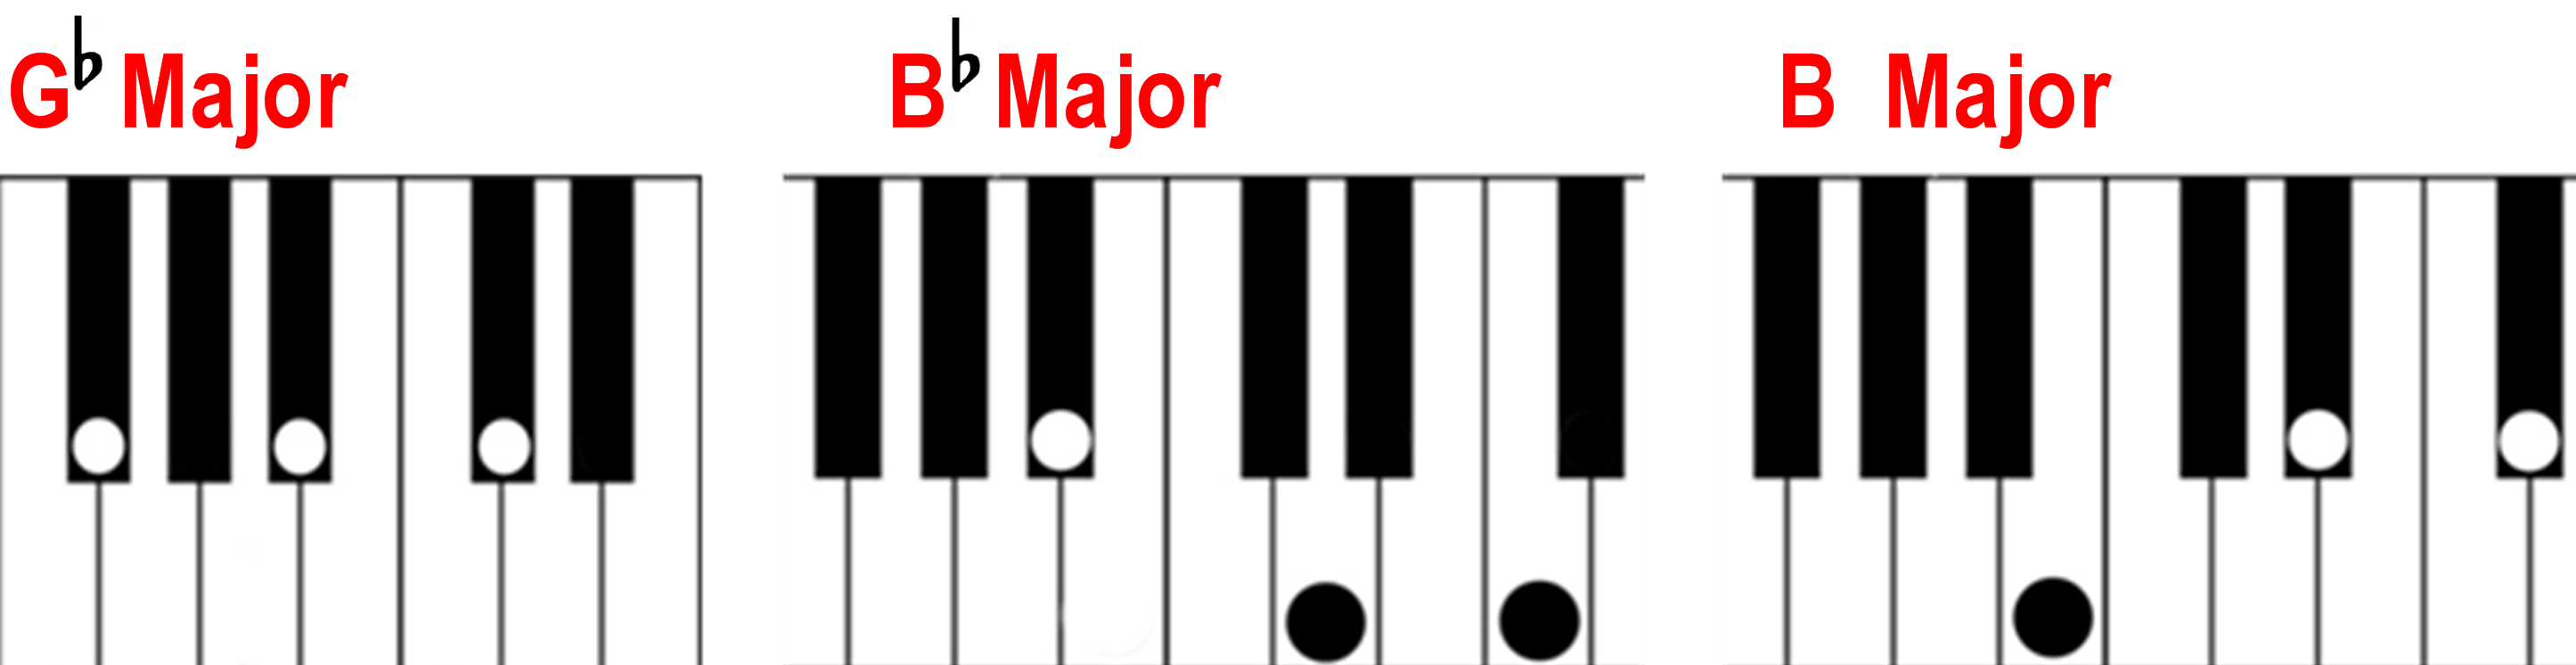 Finding a major chord on the piano g flat b flat and b major chords on the piano keyboard hexwebz Image collections